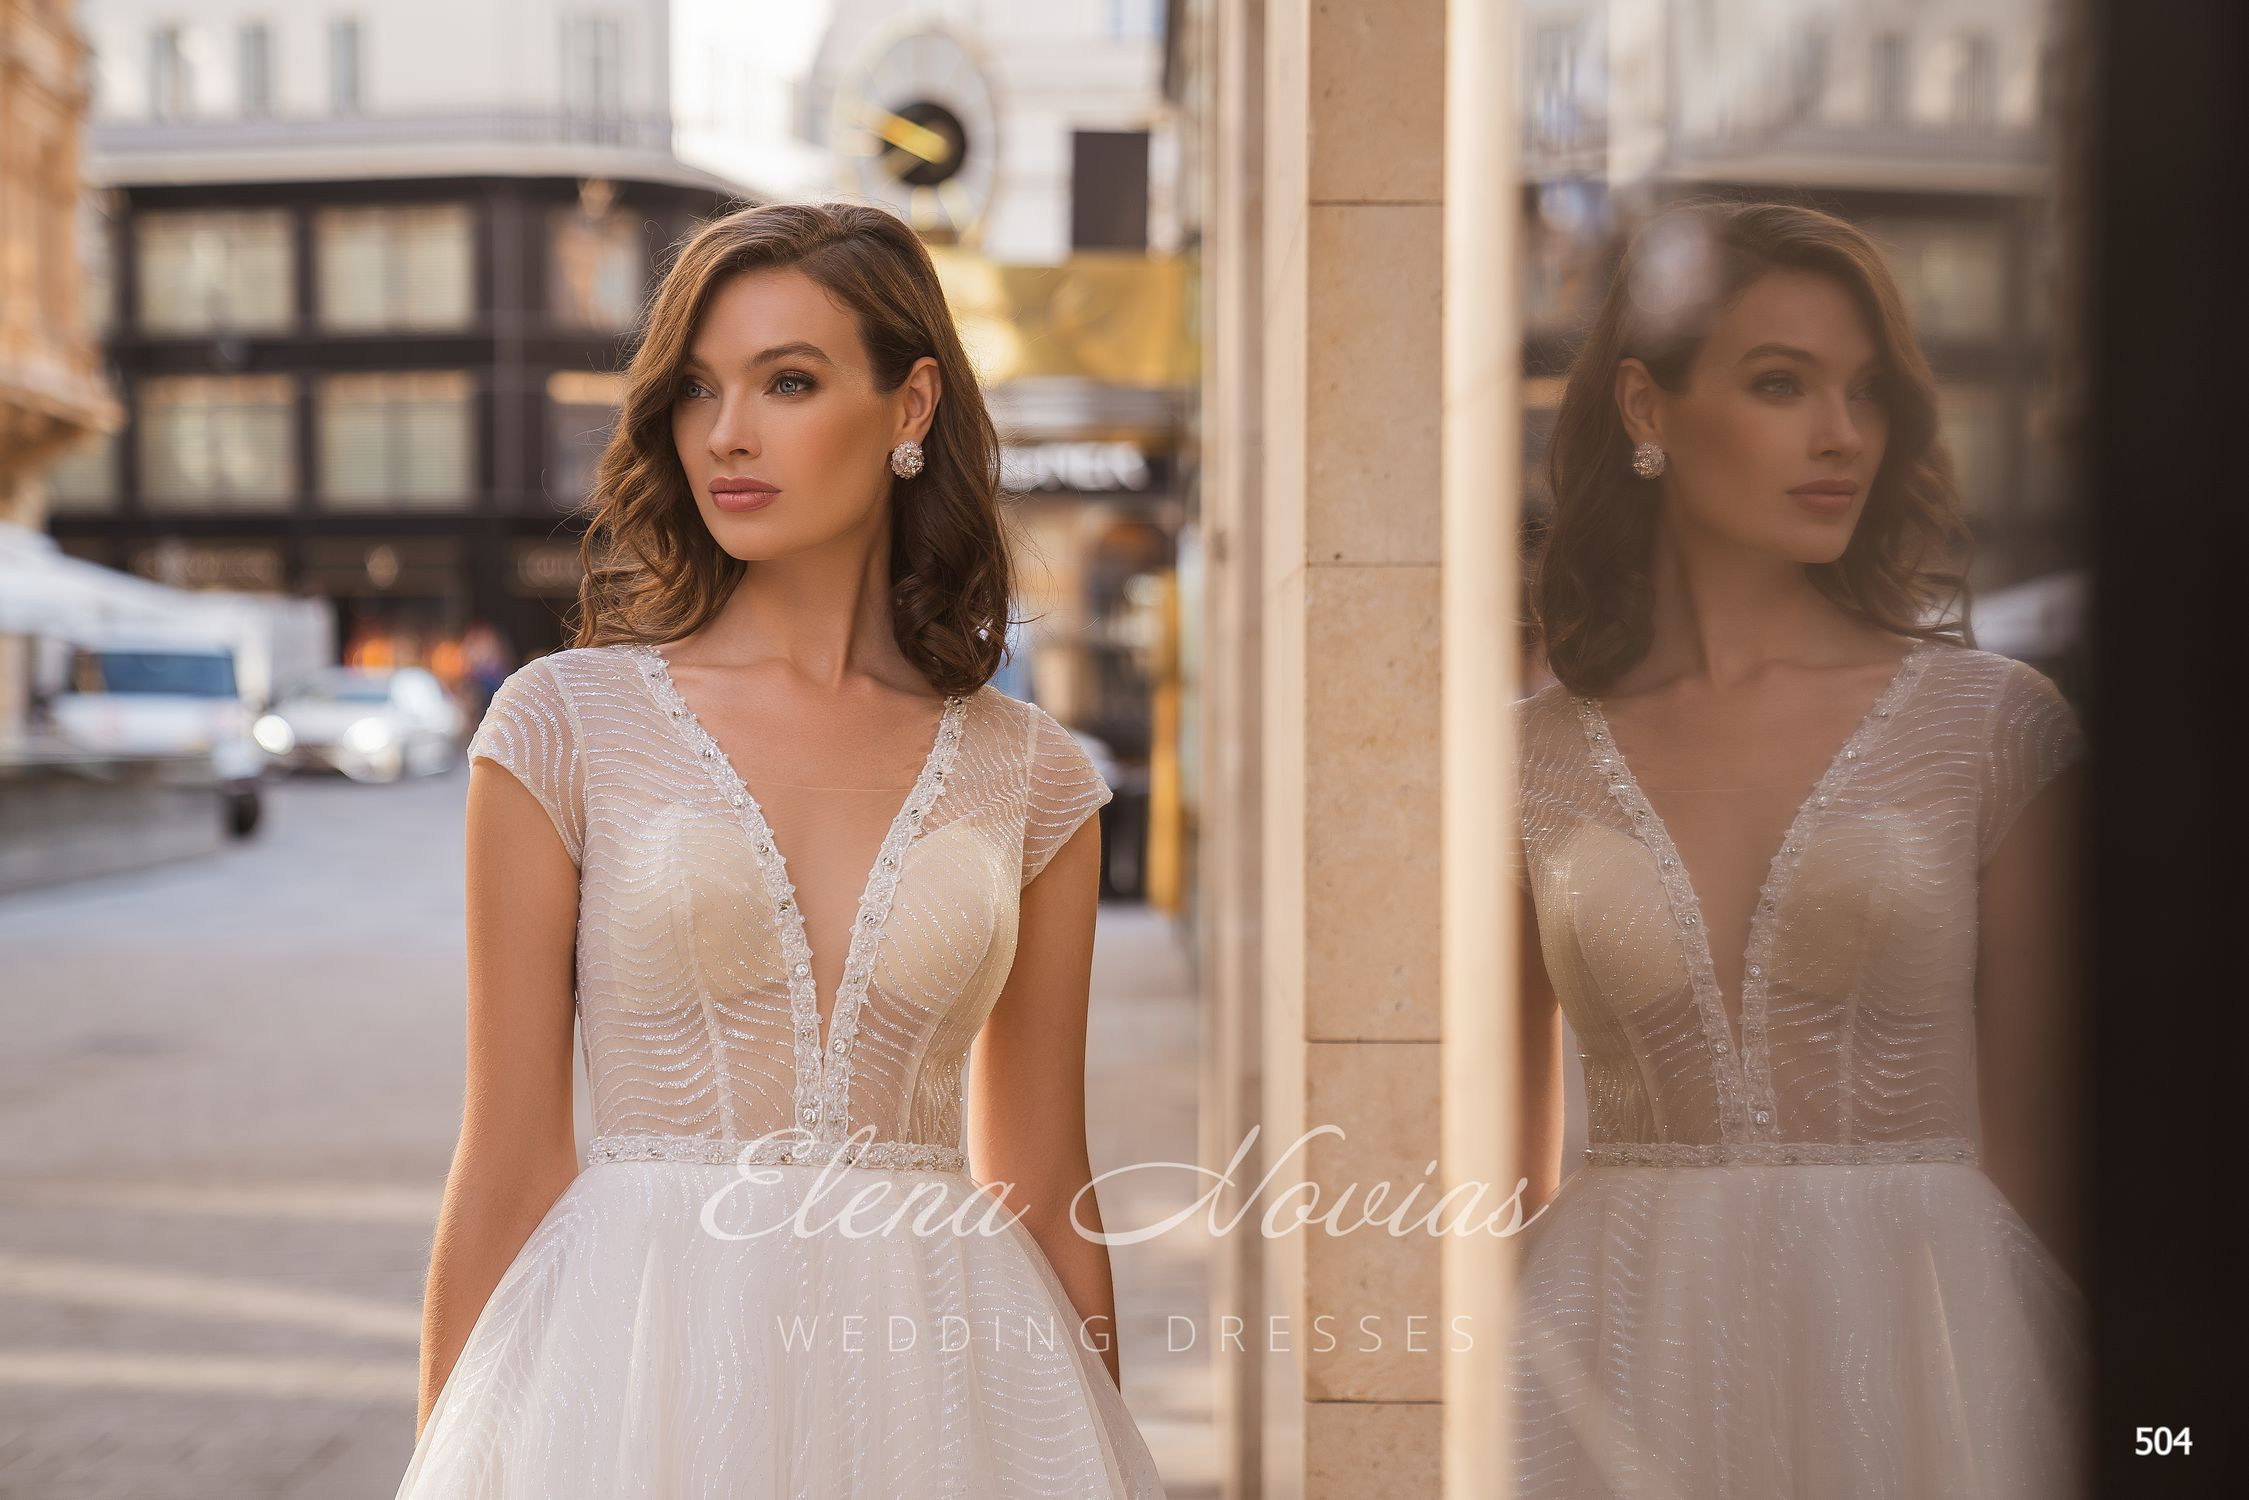 Wedding dresses 504 1